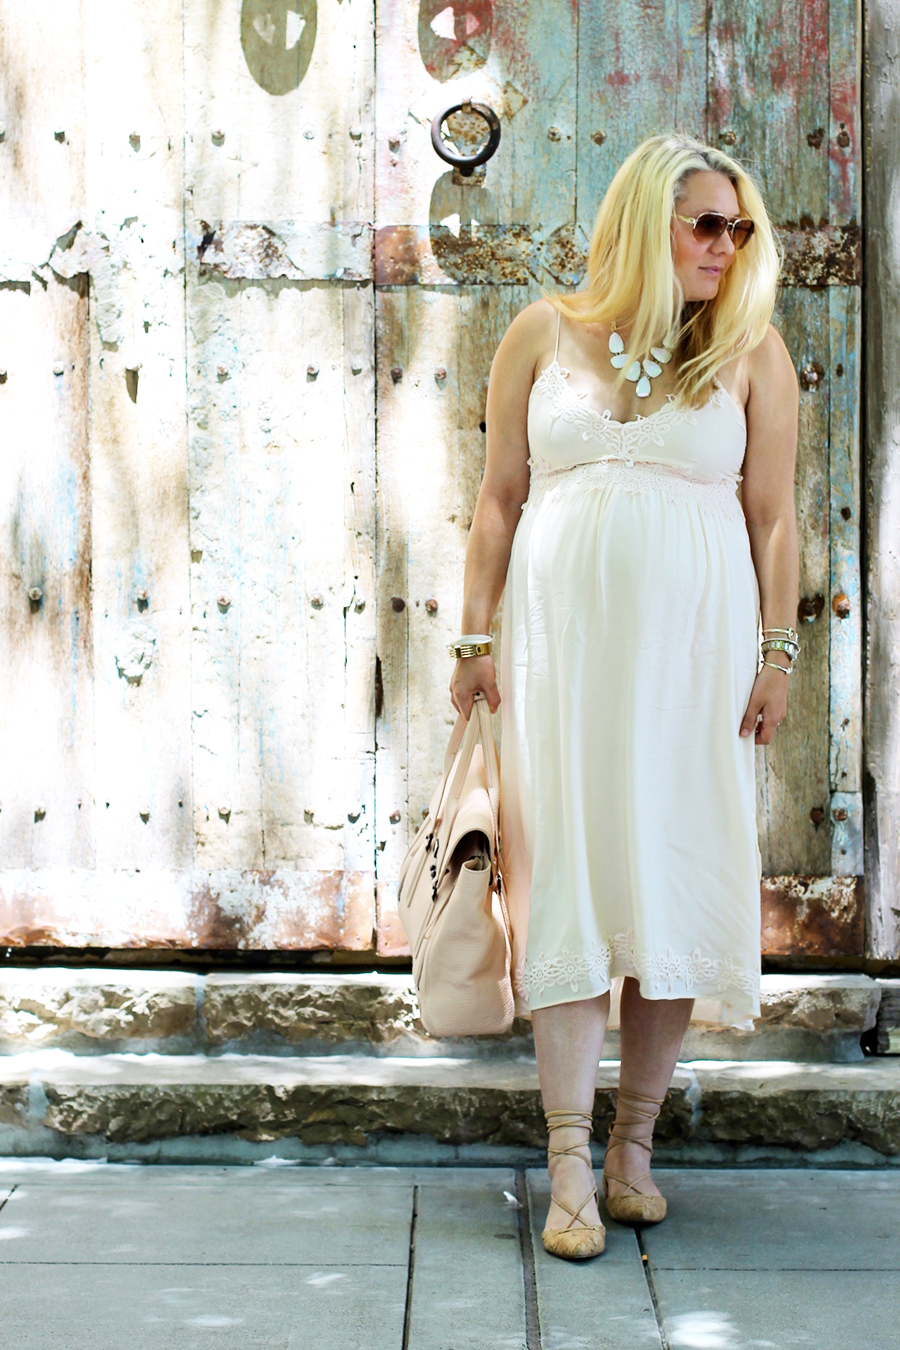 Forever 21 Lace Dress-Maternity Style-Outfit Inspiration-Pregnancy Style-Have Need Want 8